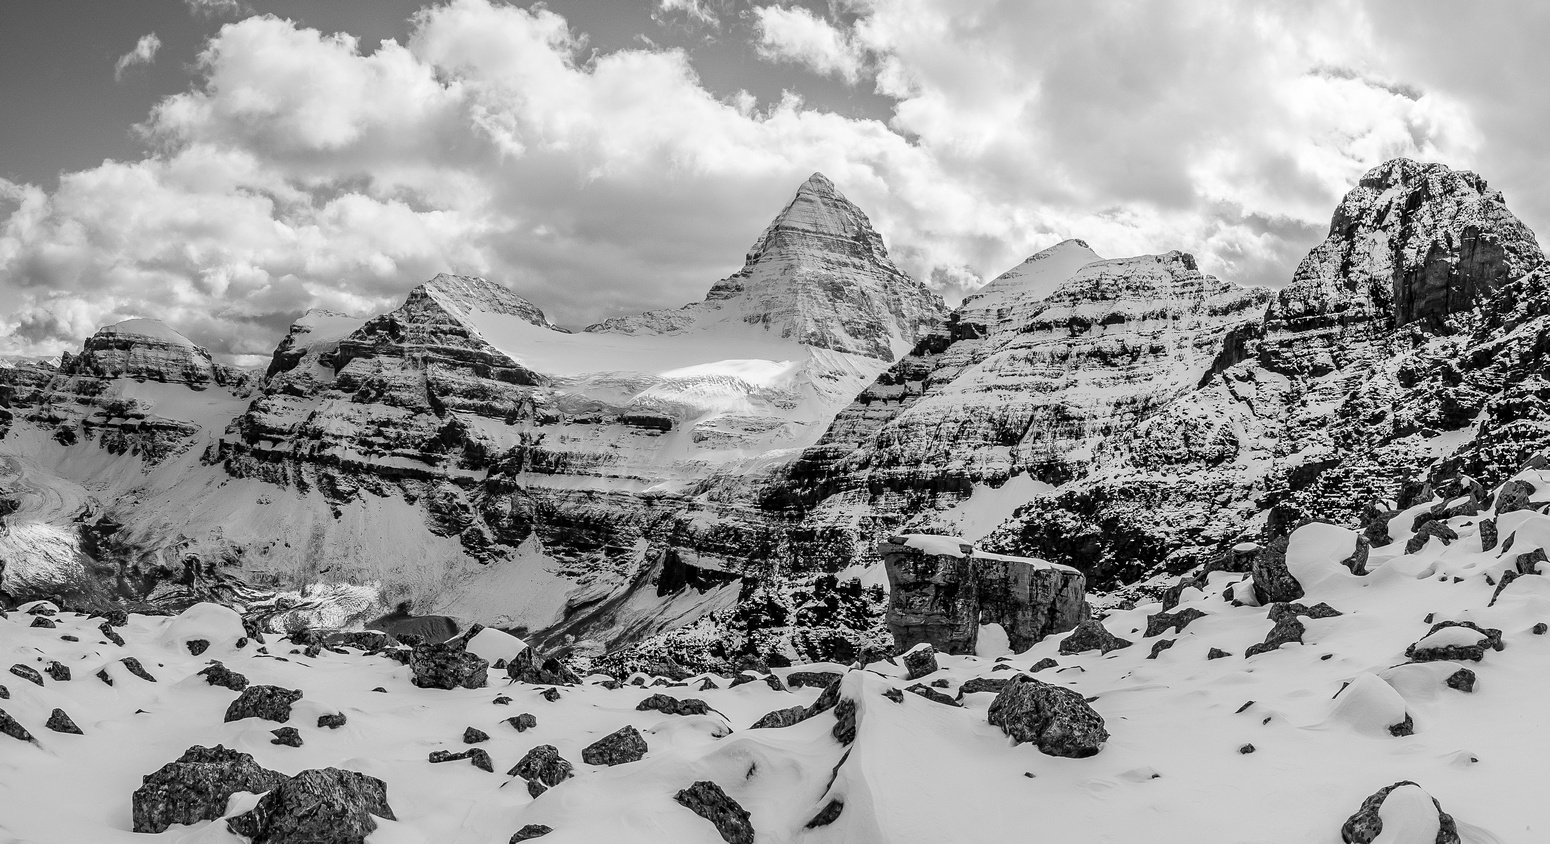 Looking towards Mount Assiniboine with Mount Magog to the left of it and Wedgwood and Sunburst Peaks to the right.